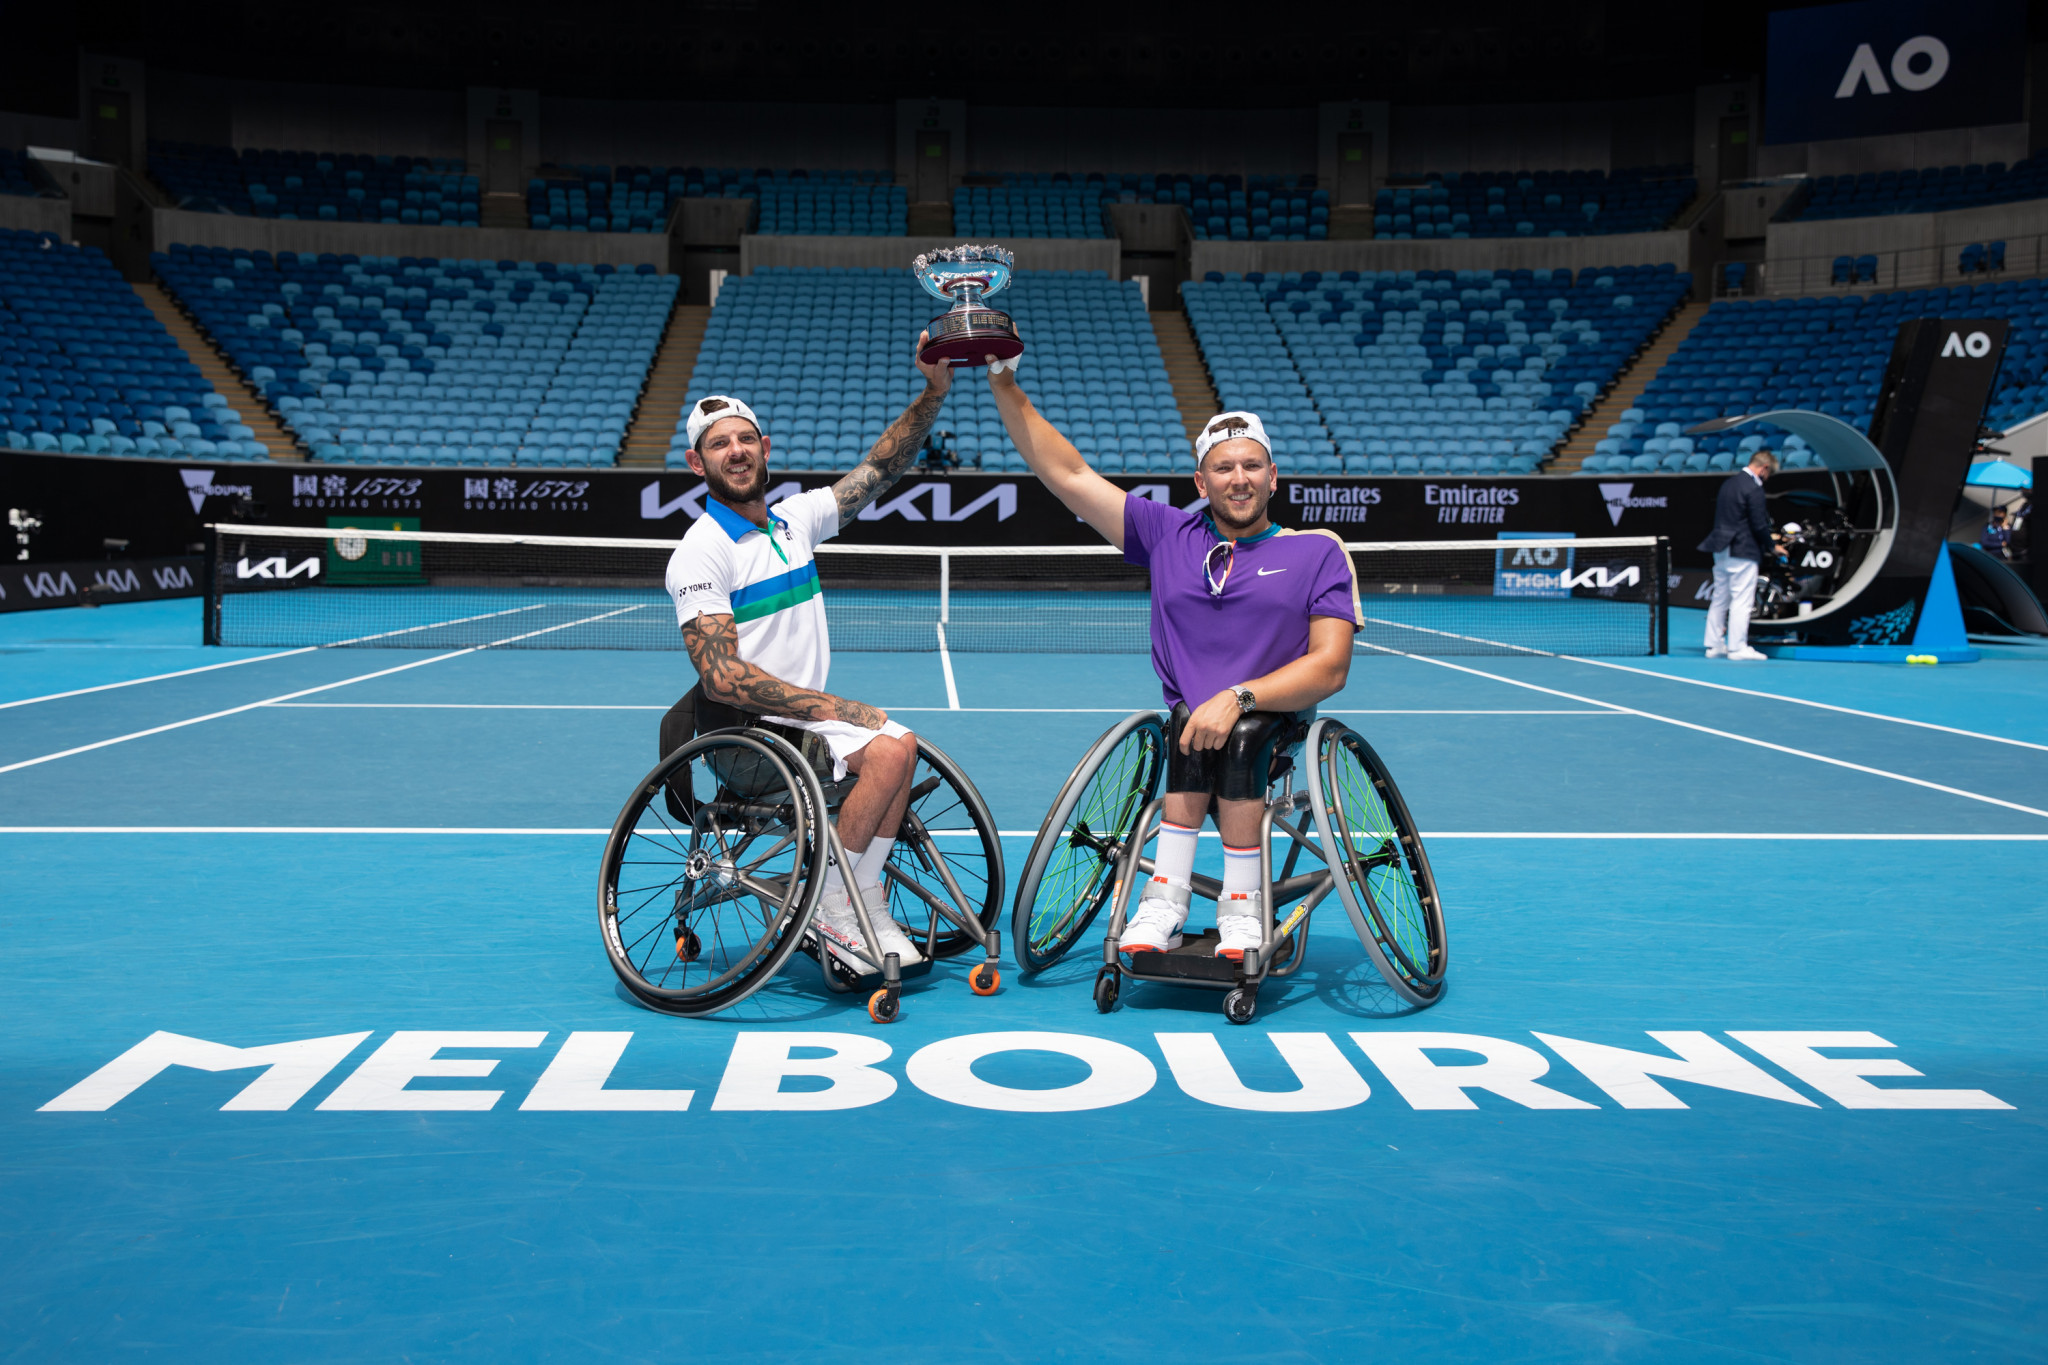 Alcott and Davidson secure fourth successive Australian Open quad doubles crown